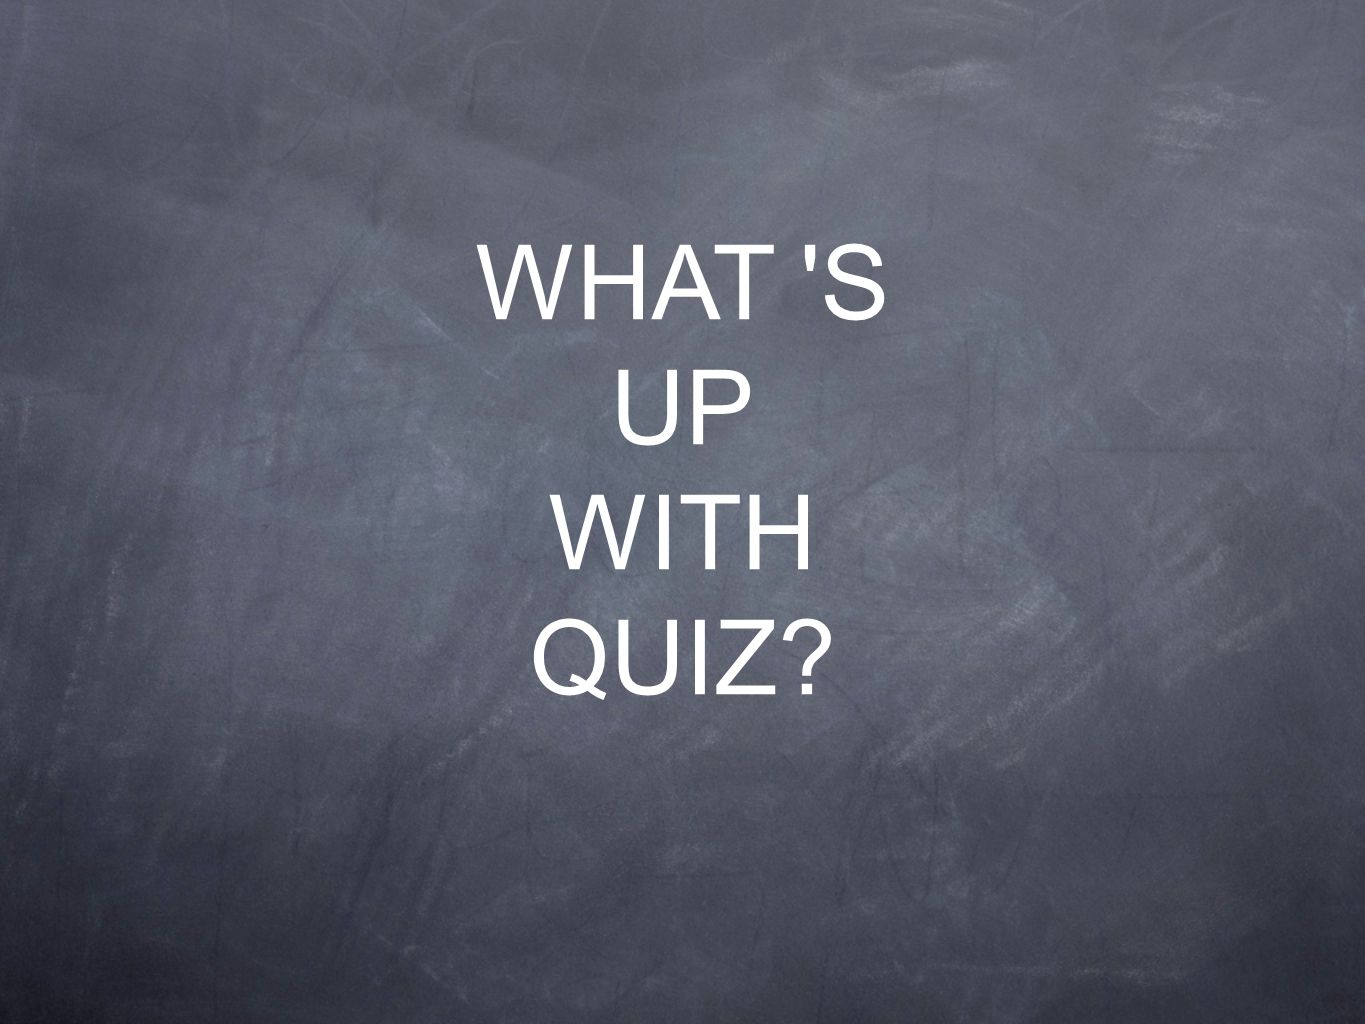 WHAT S UP WITH QUIZ